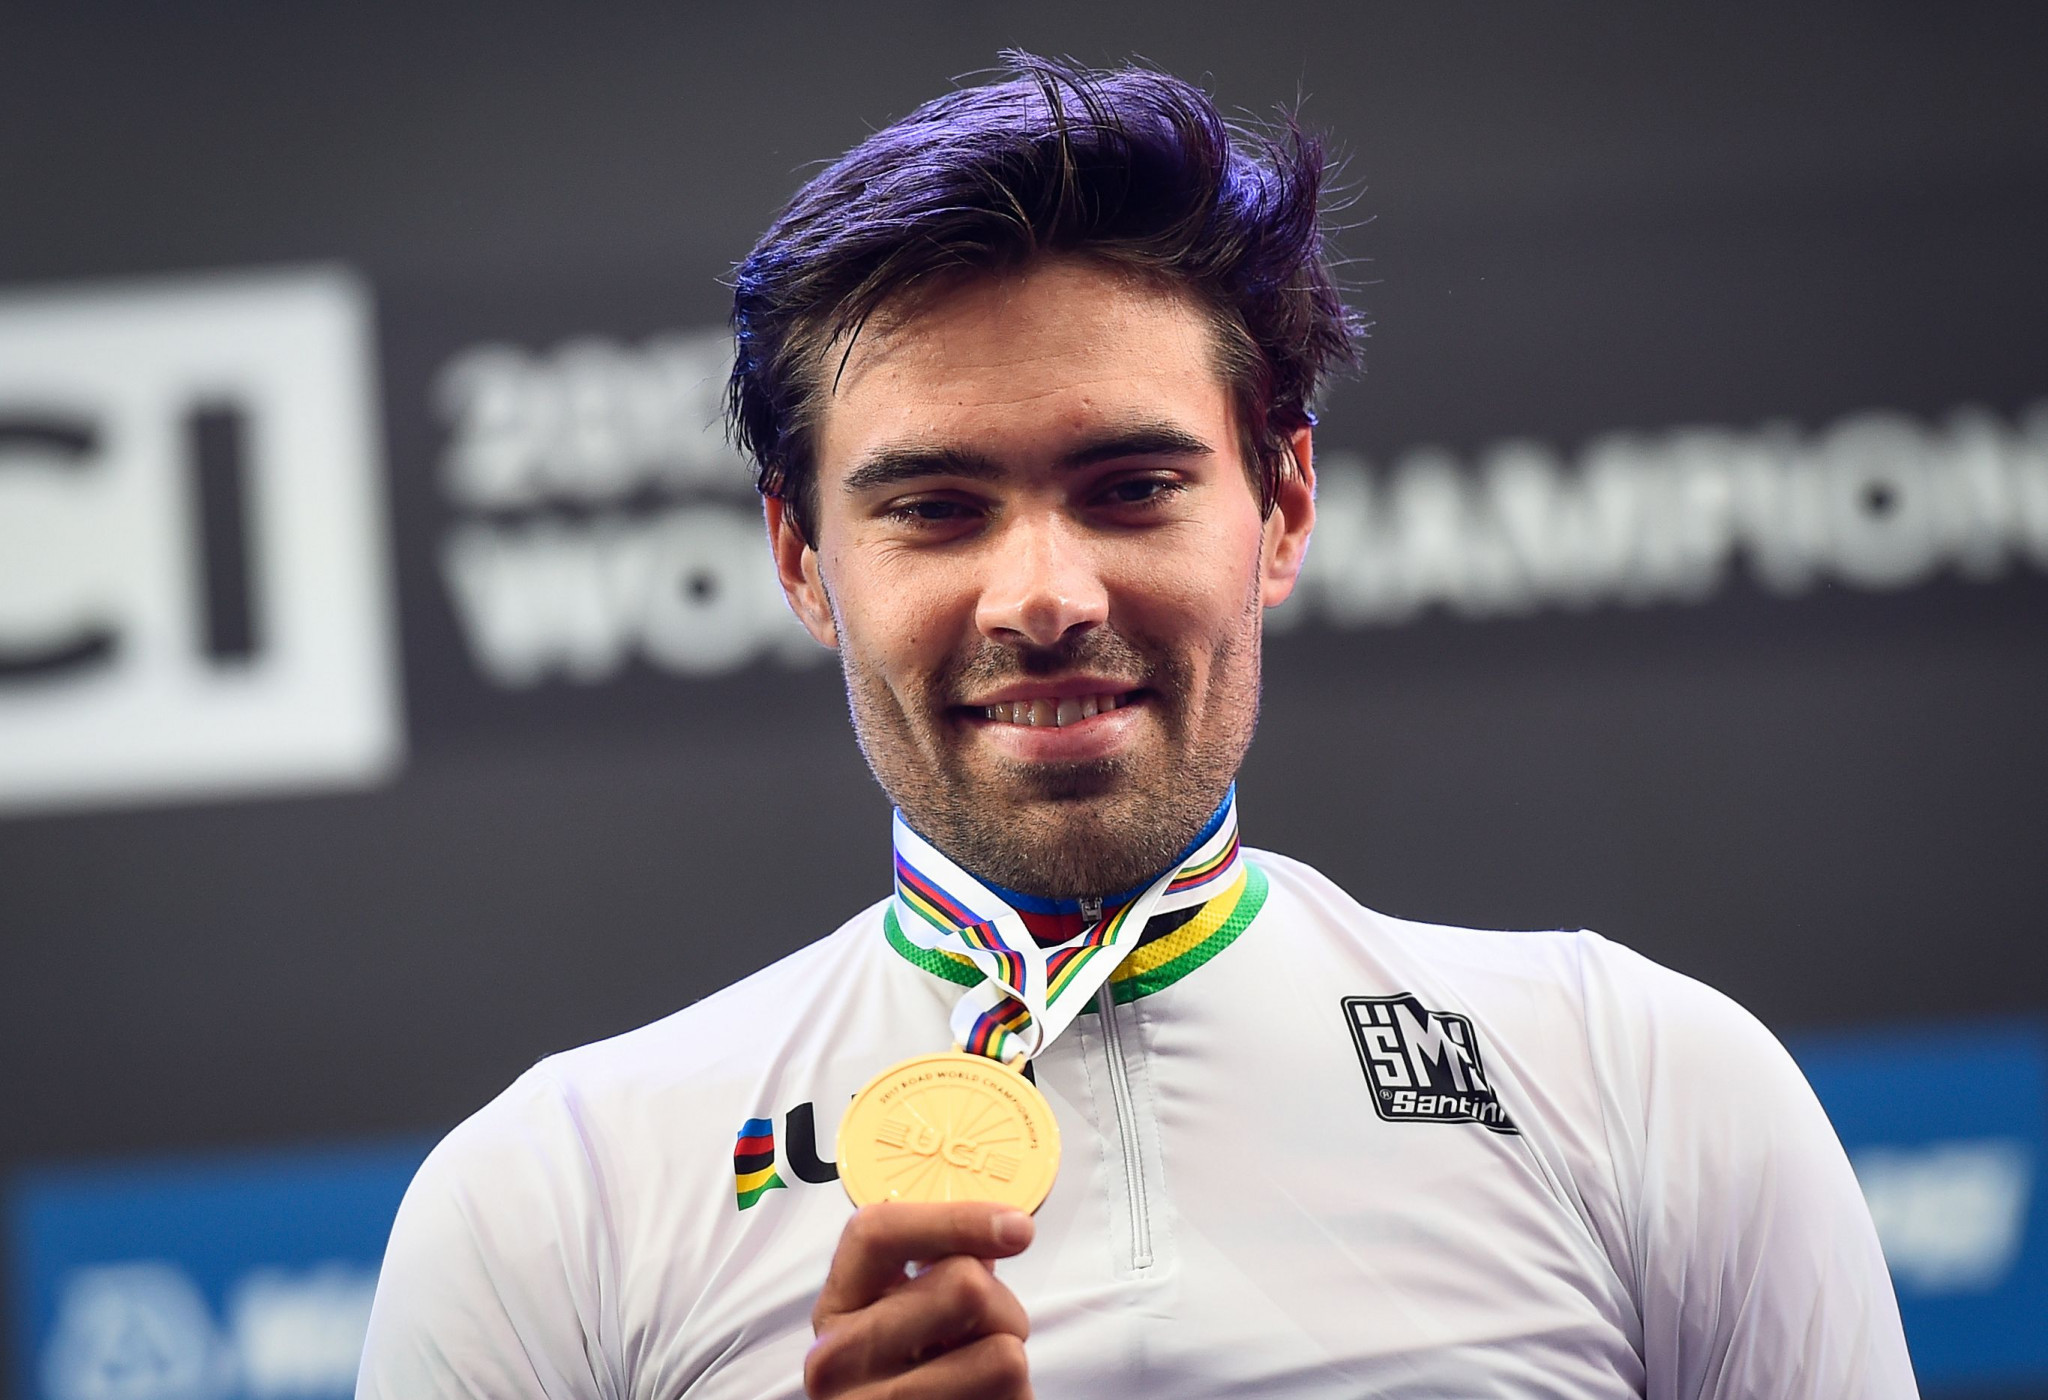 Dumoulin dominates men's individual time trial at UCI Road World Championships